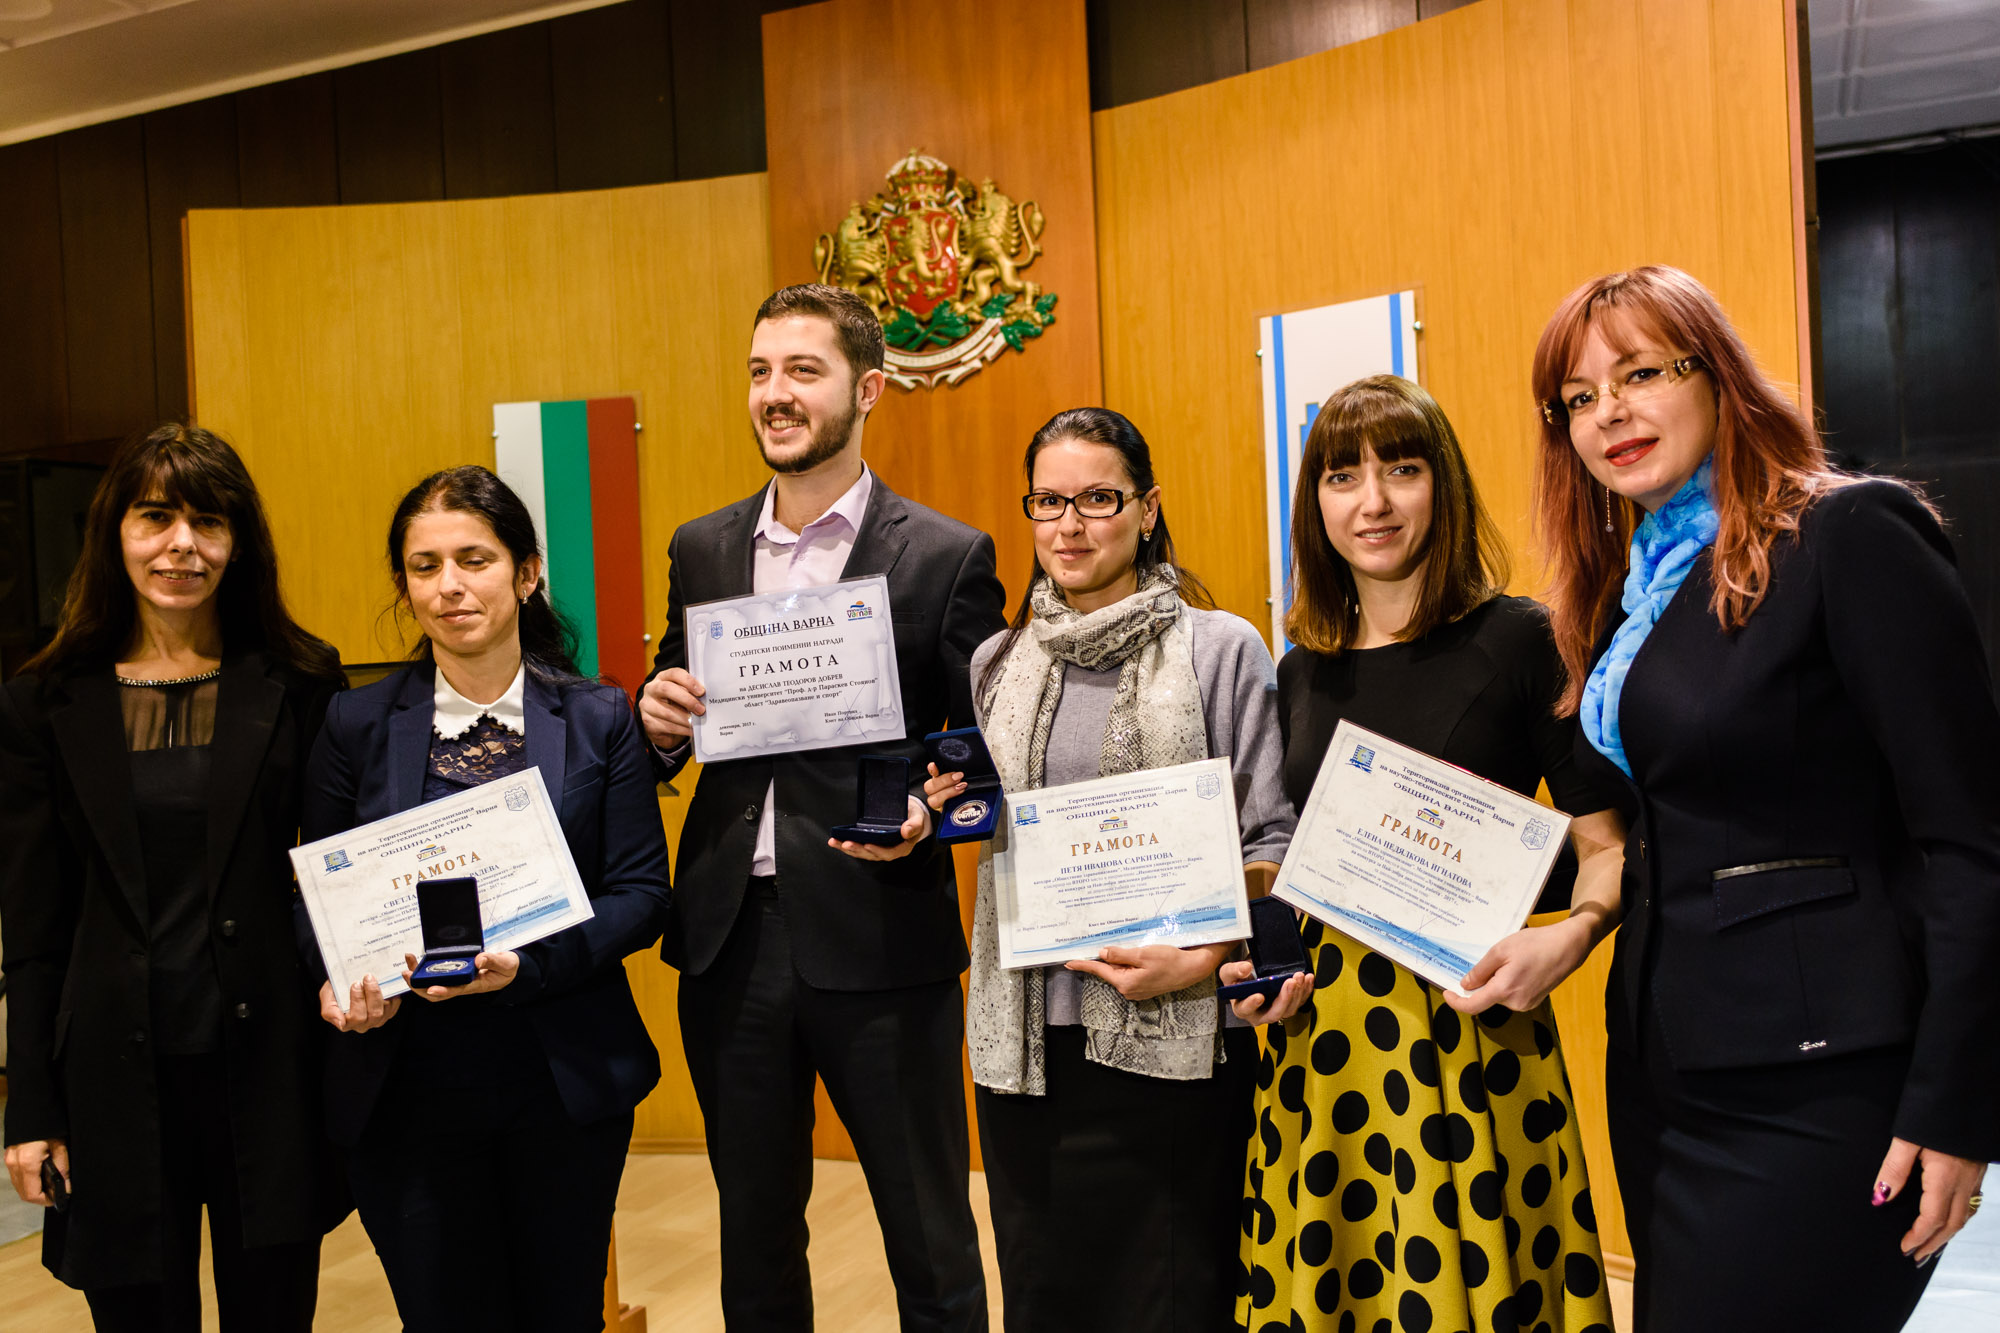 Four Students from the Medical University Were Awarded on the Eve of 8th December by the Municipality of Varna